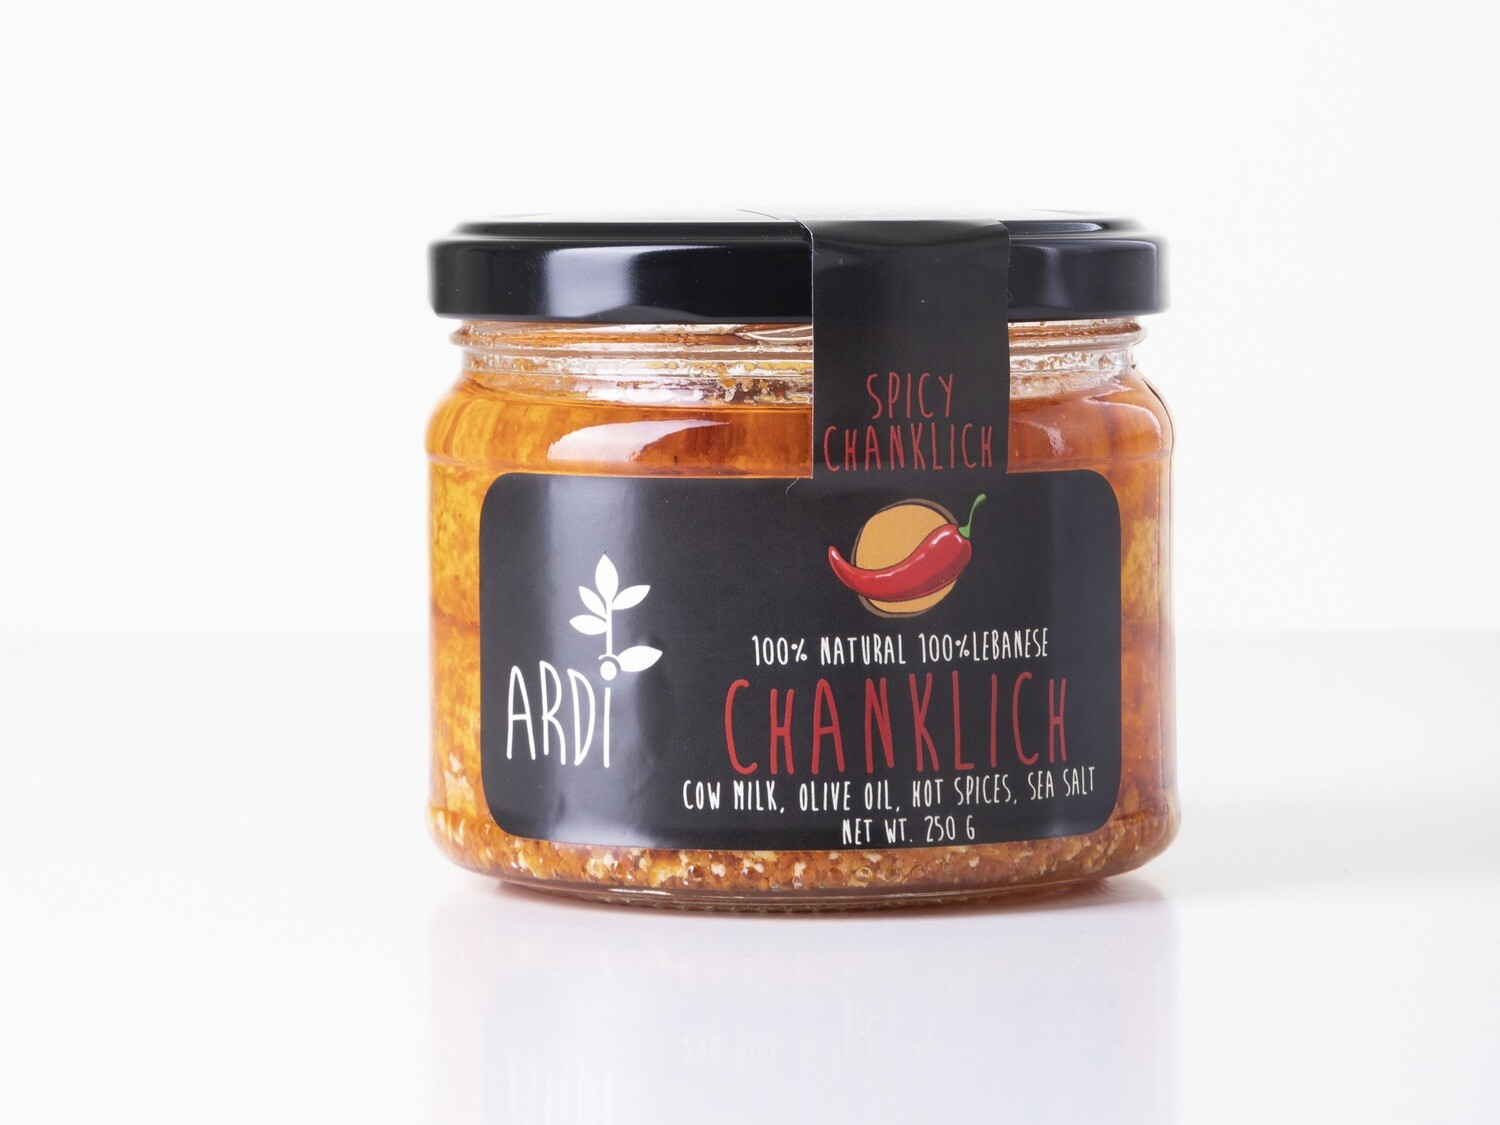 Chanklich Spicy شنكليش حار (Jar) - ARDI